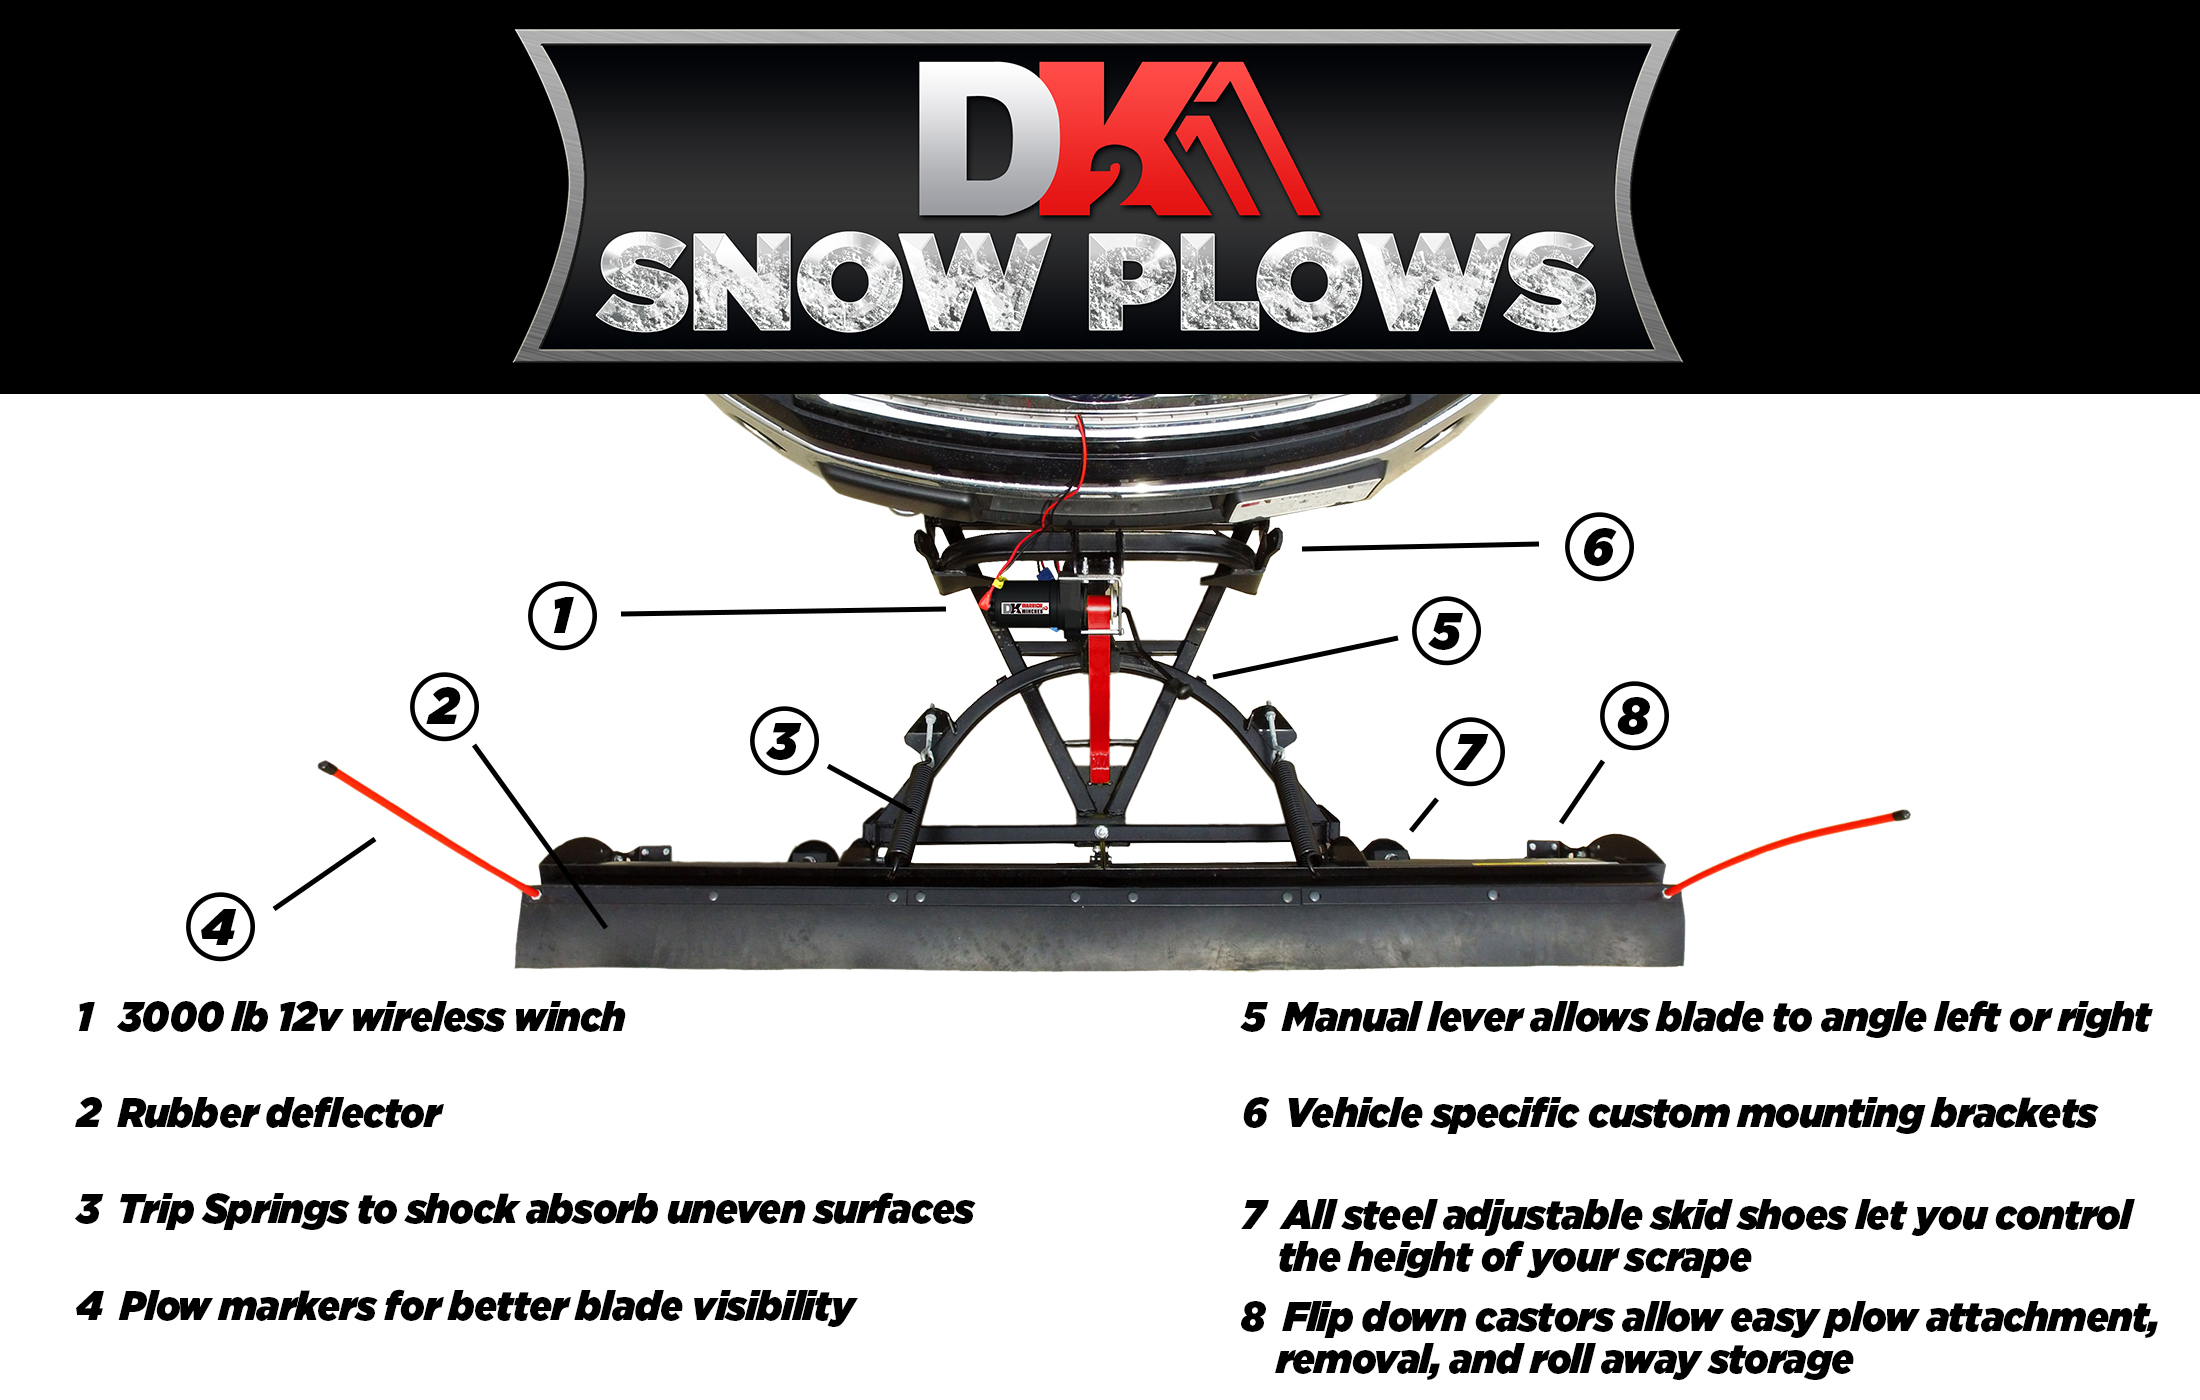 Snowplow Overview